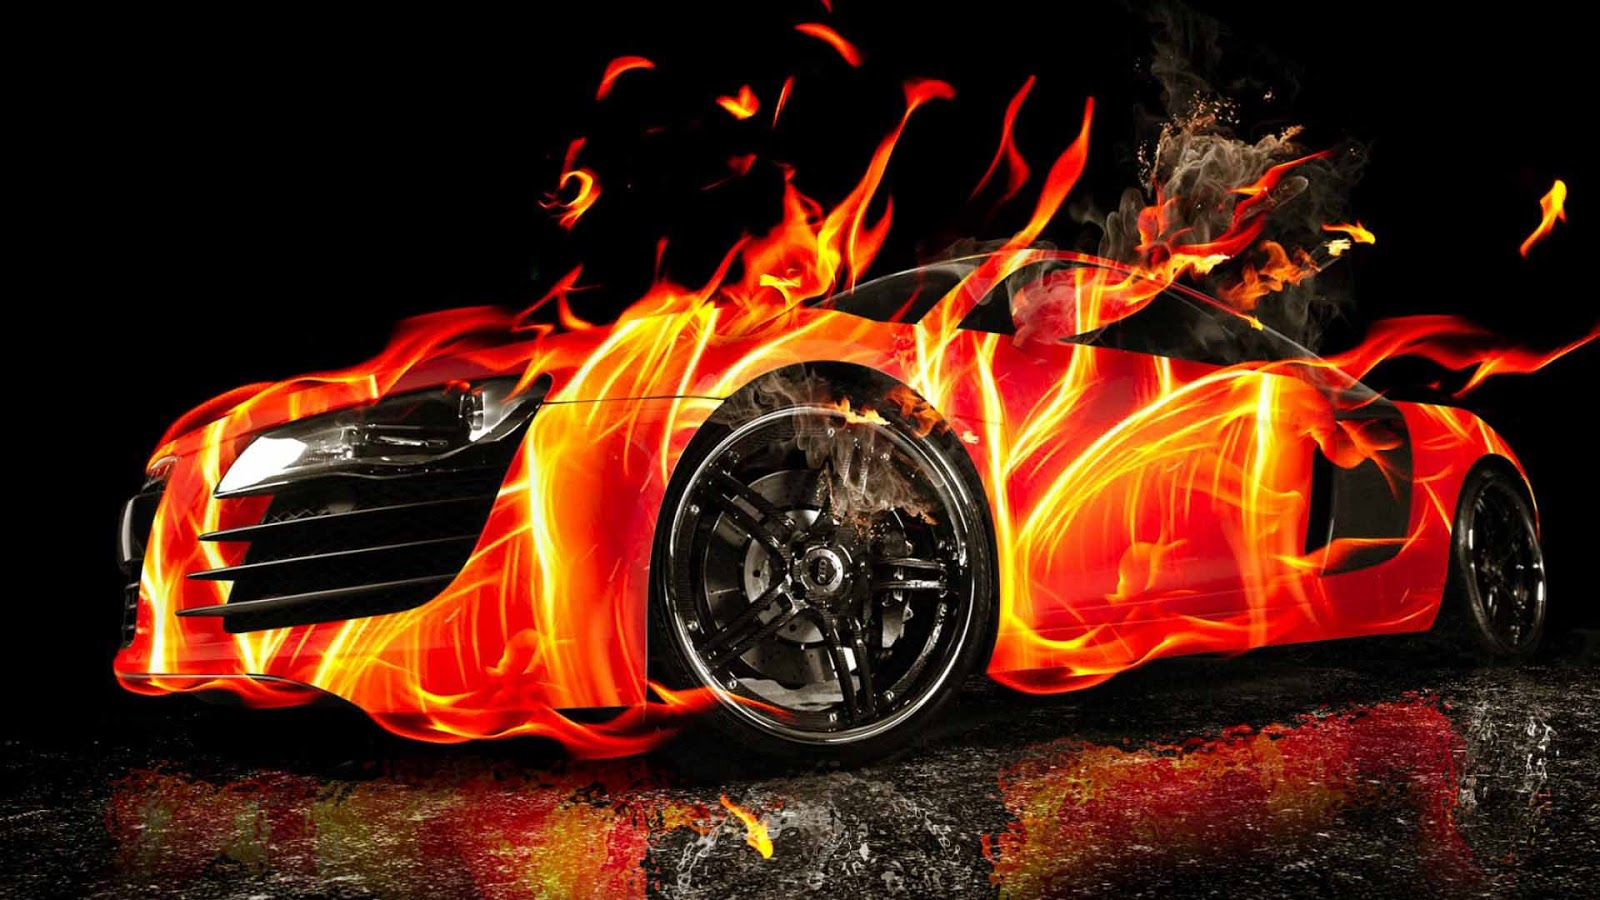 Marvelous 3D HD Car Fire Wallpaper